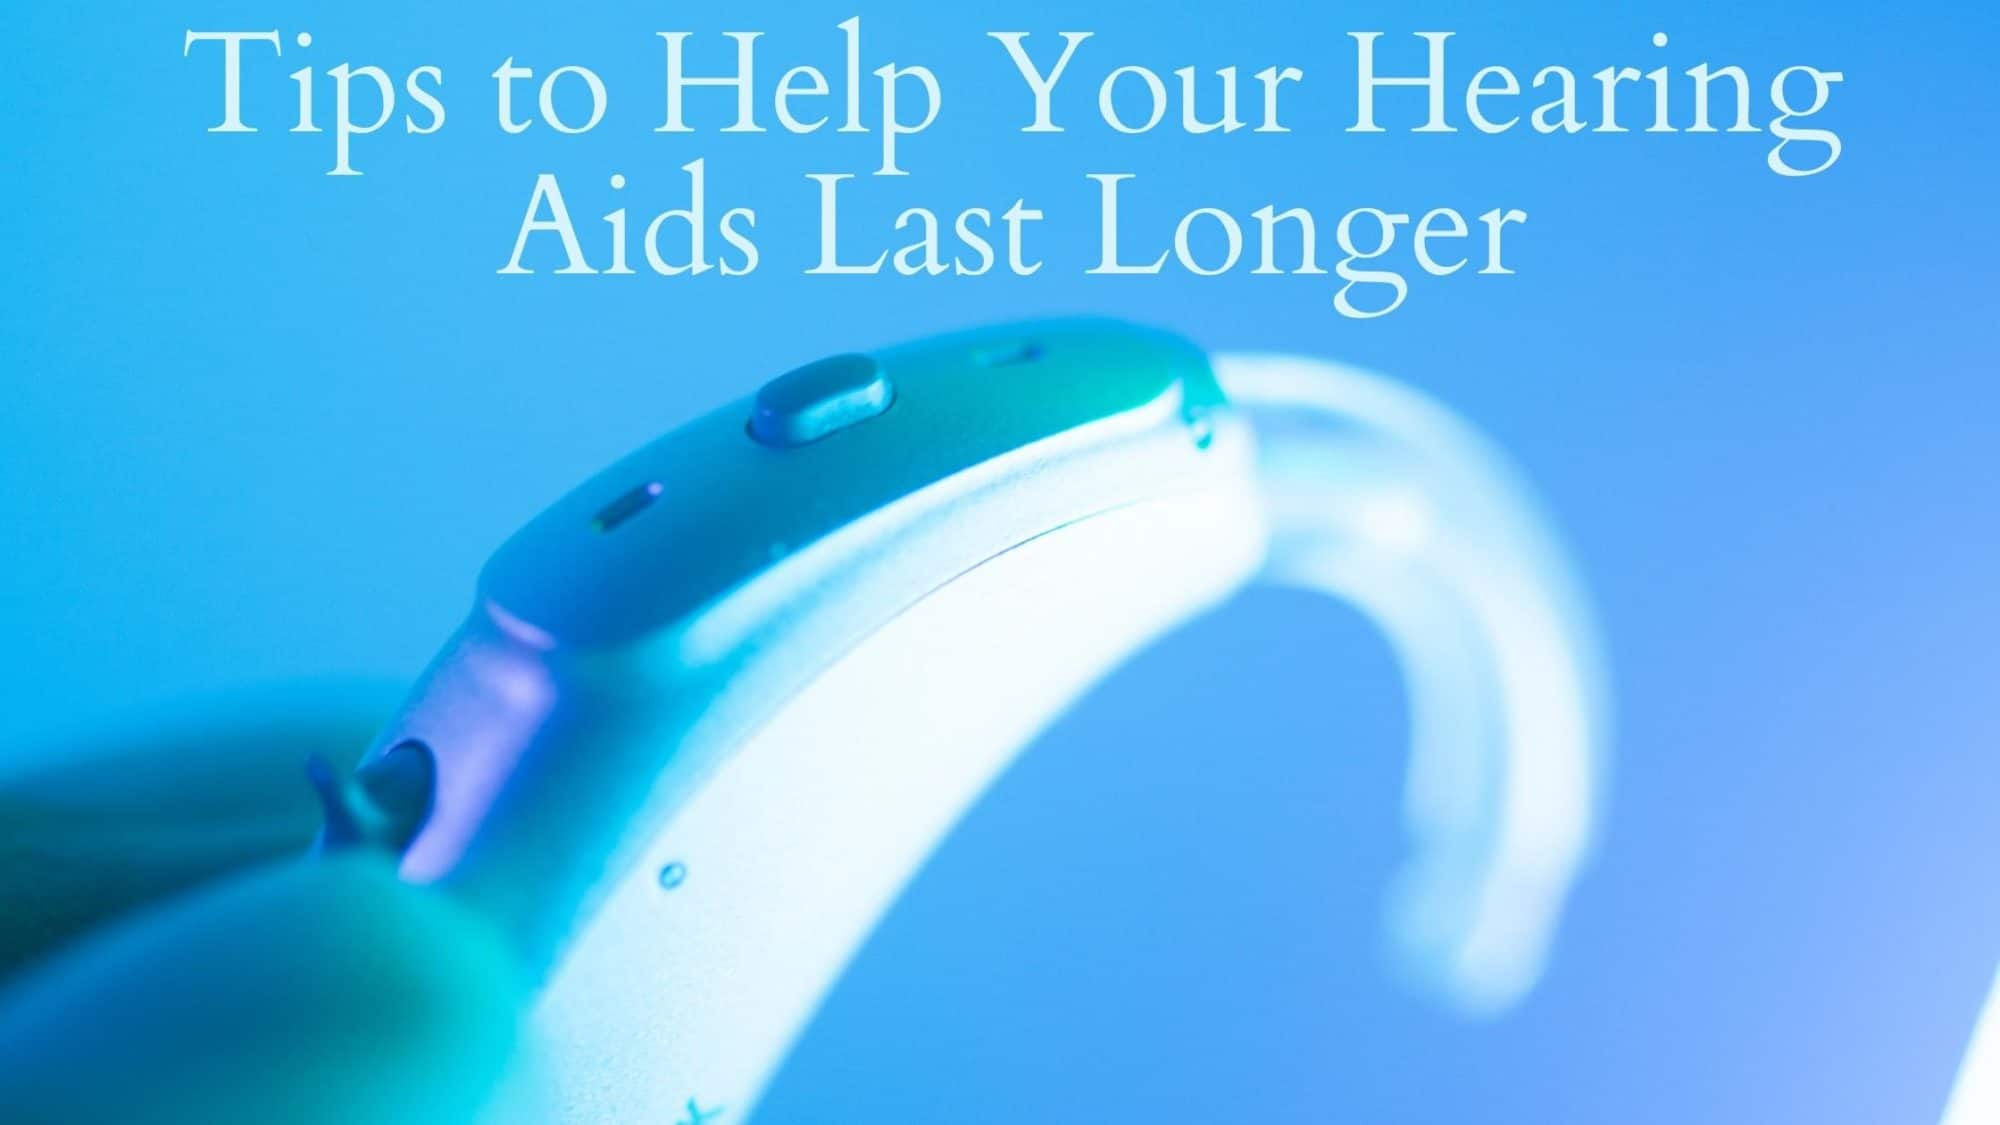 Tips to Help Your Hearing Aids Last Longer